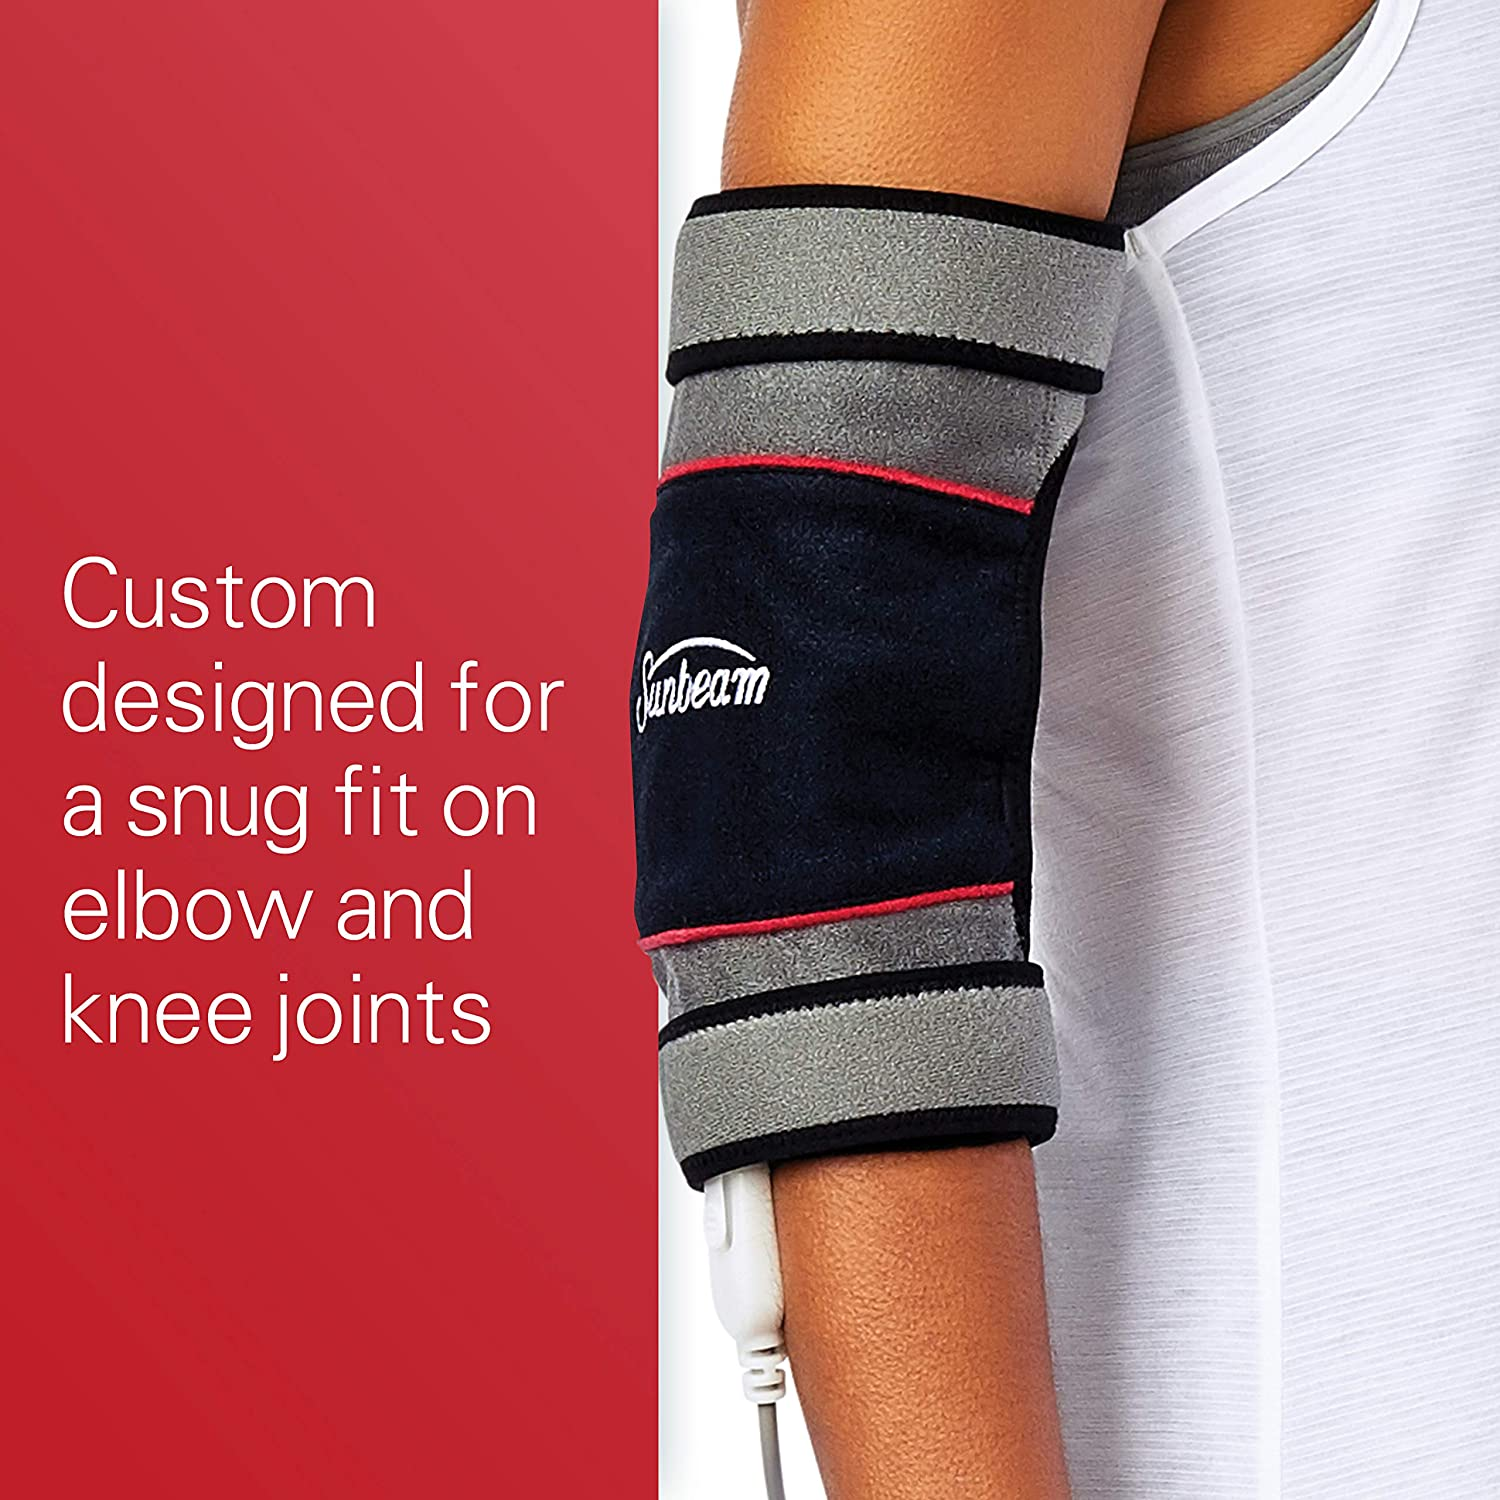 Sunbeam Flextemp Joint Wrap for Pain Relief Hot & Cold Therapy for Elbow or Knees Heating Pad With 3 Heat Settings & 2 Hour Auto-off: Health & Personal Care